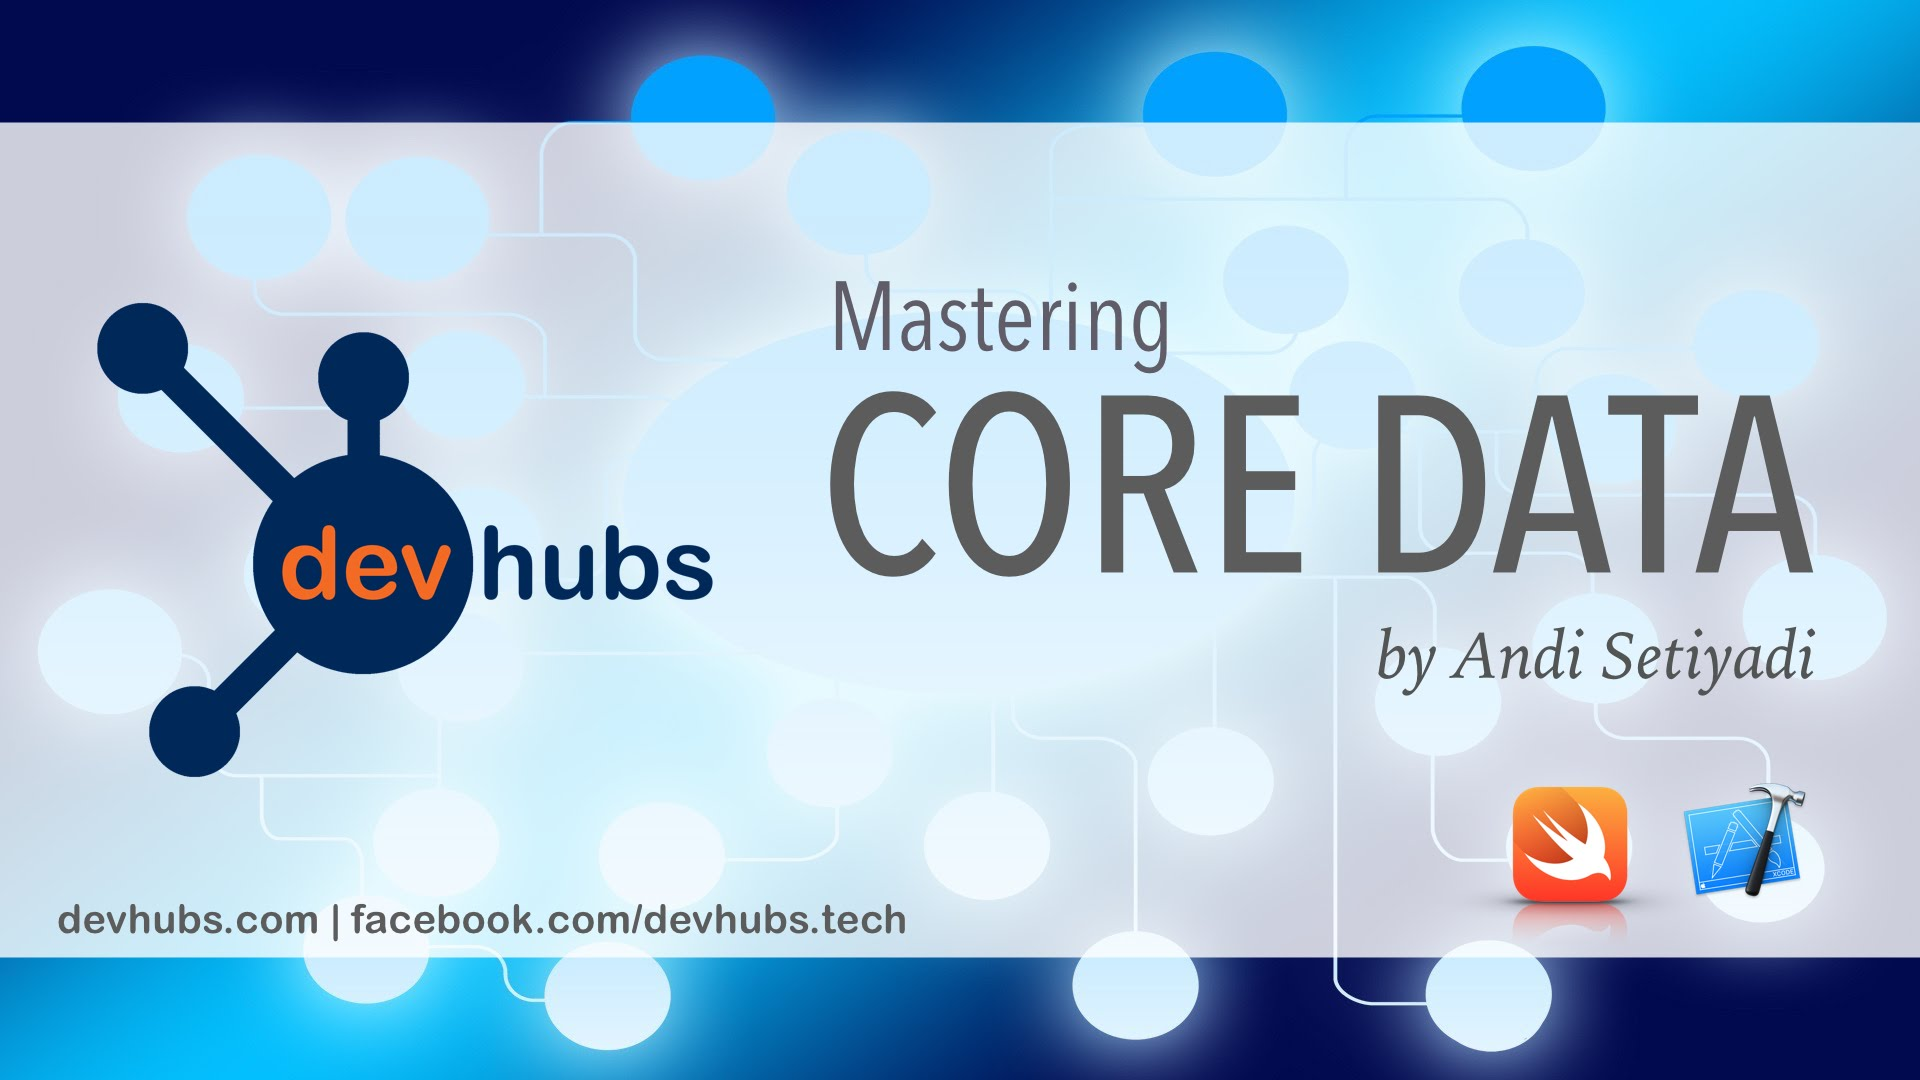 Unleash the power of Core Data on your iOS application combined with iCloud